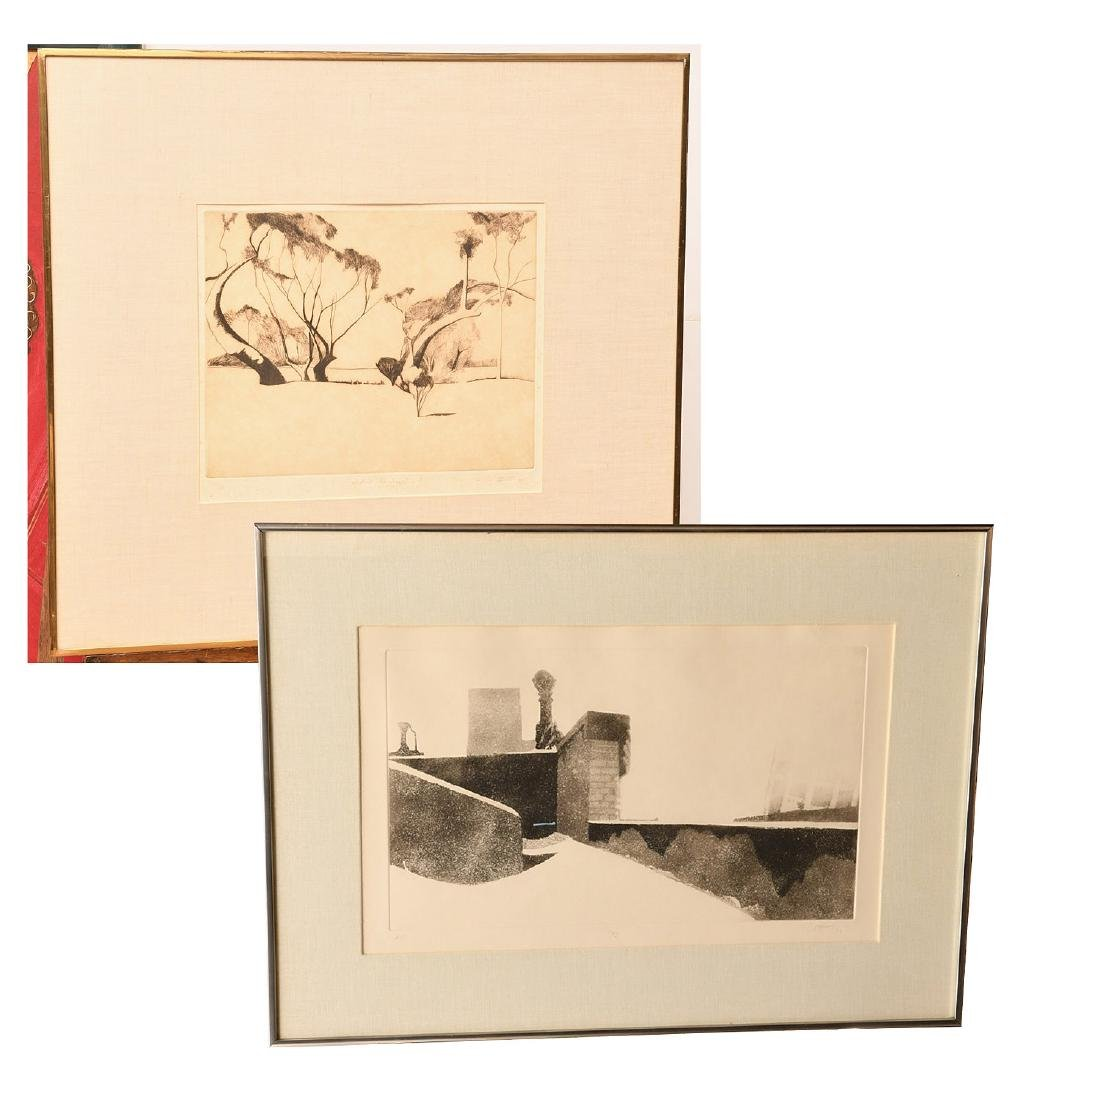 Pearson, (2) etchings